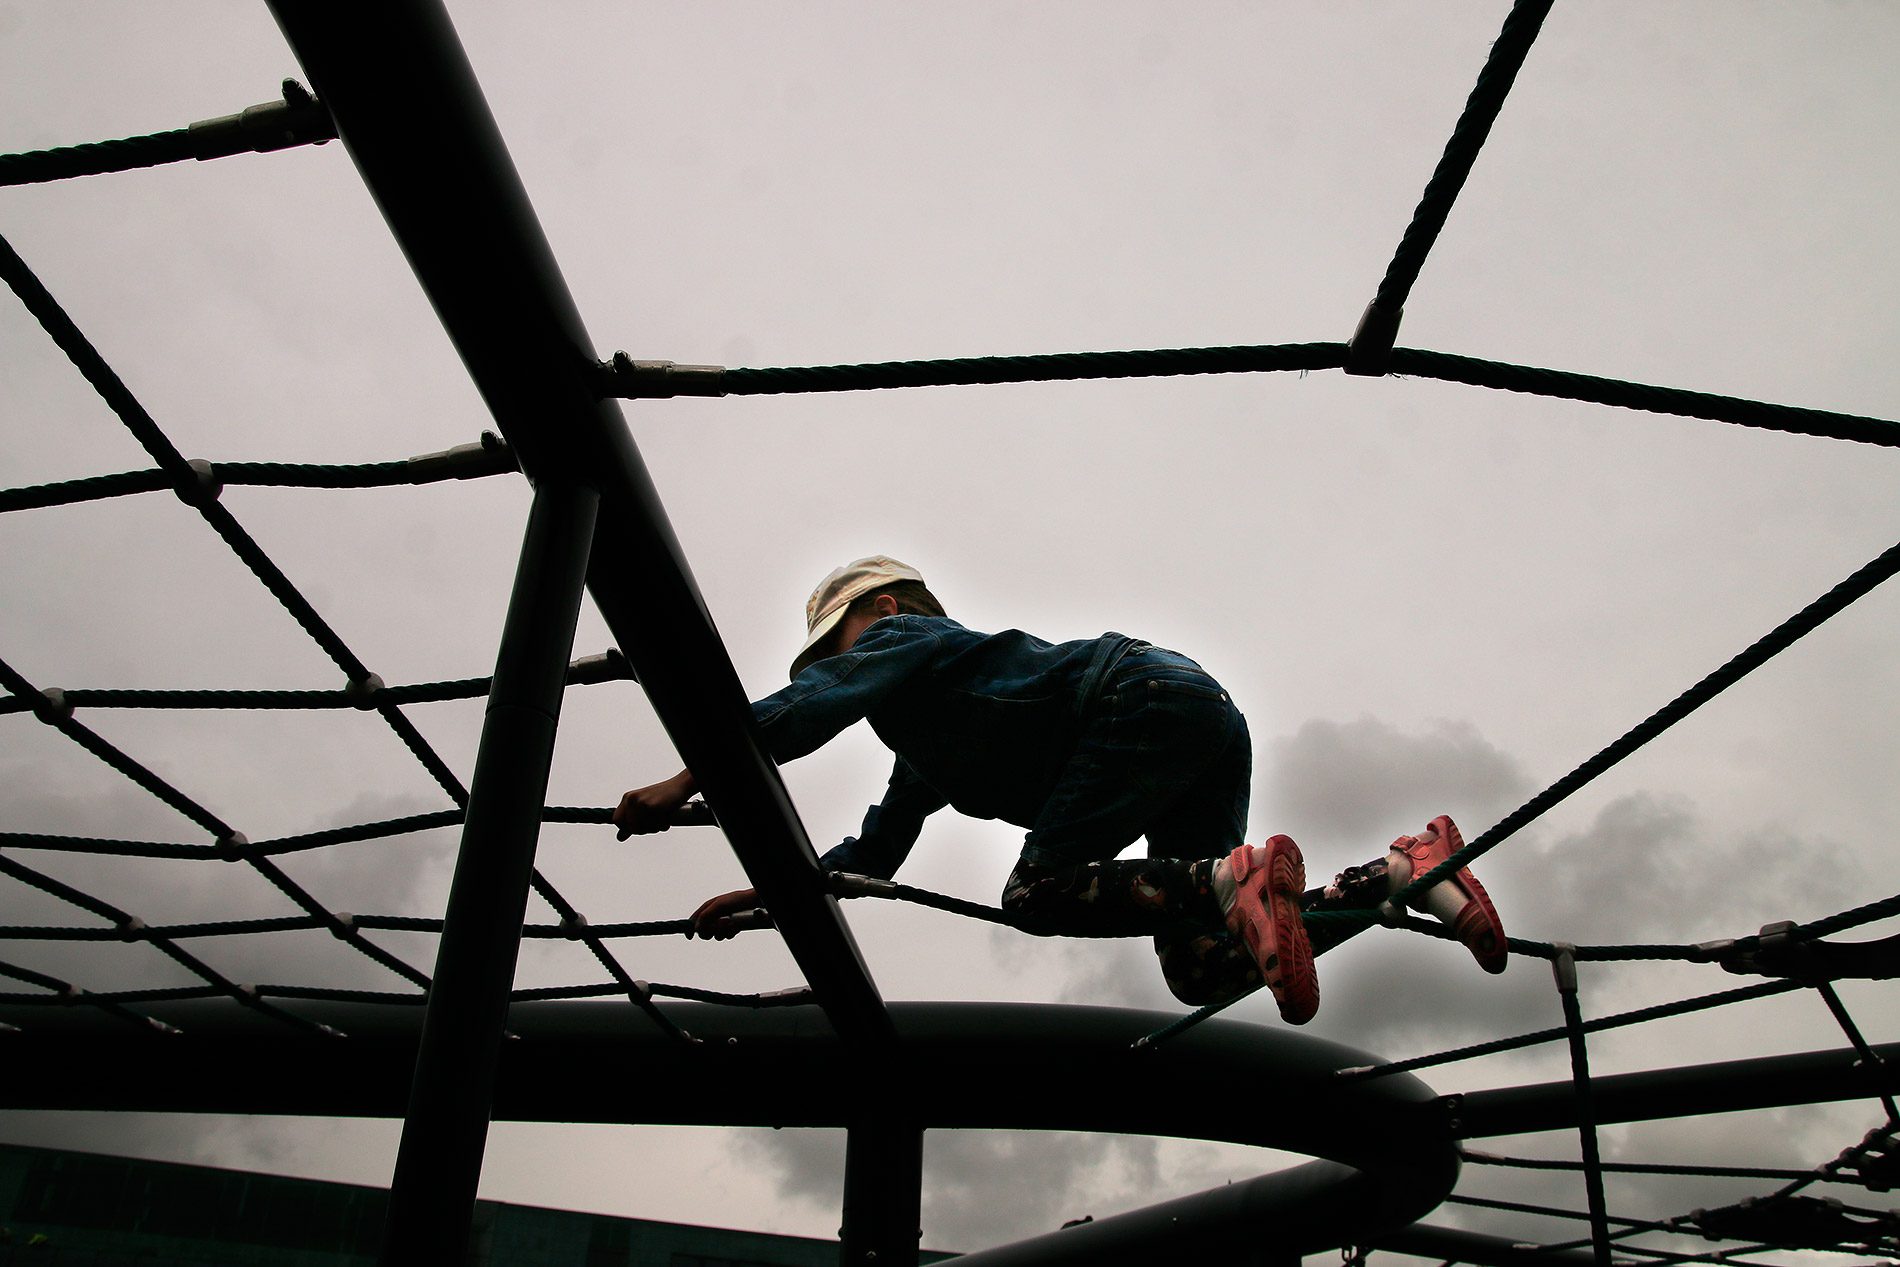 Venla, 8, is trying out Finland's biggest known net climbing frame at the opening of Playground Loru's outdoor play area in front of the Oodi Central Library. Picture: Tony Öhberg for Finland Today